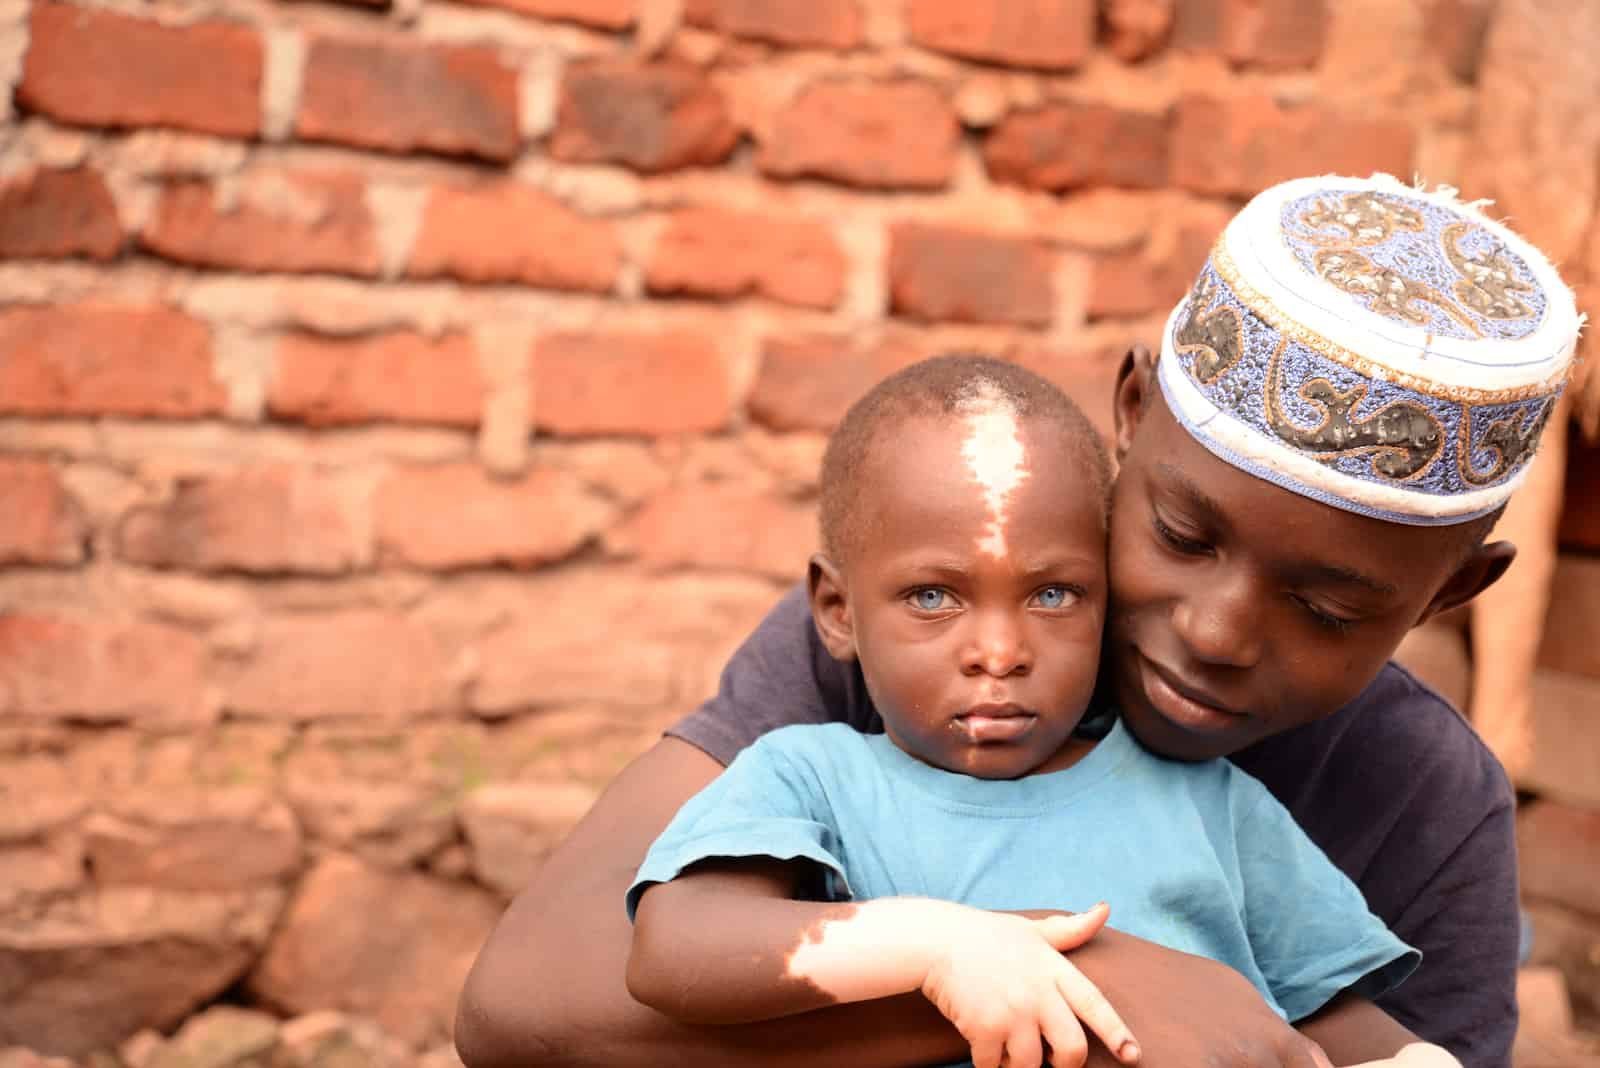 Waardenburg Syndrome picture - A boy wearing a skull cap hugs a toddler with blue eyes and partial albinism.